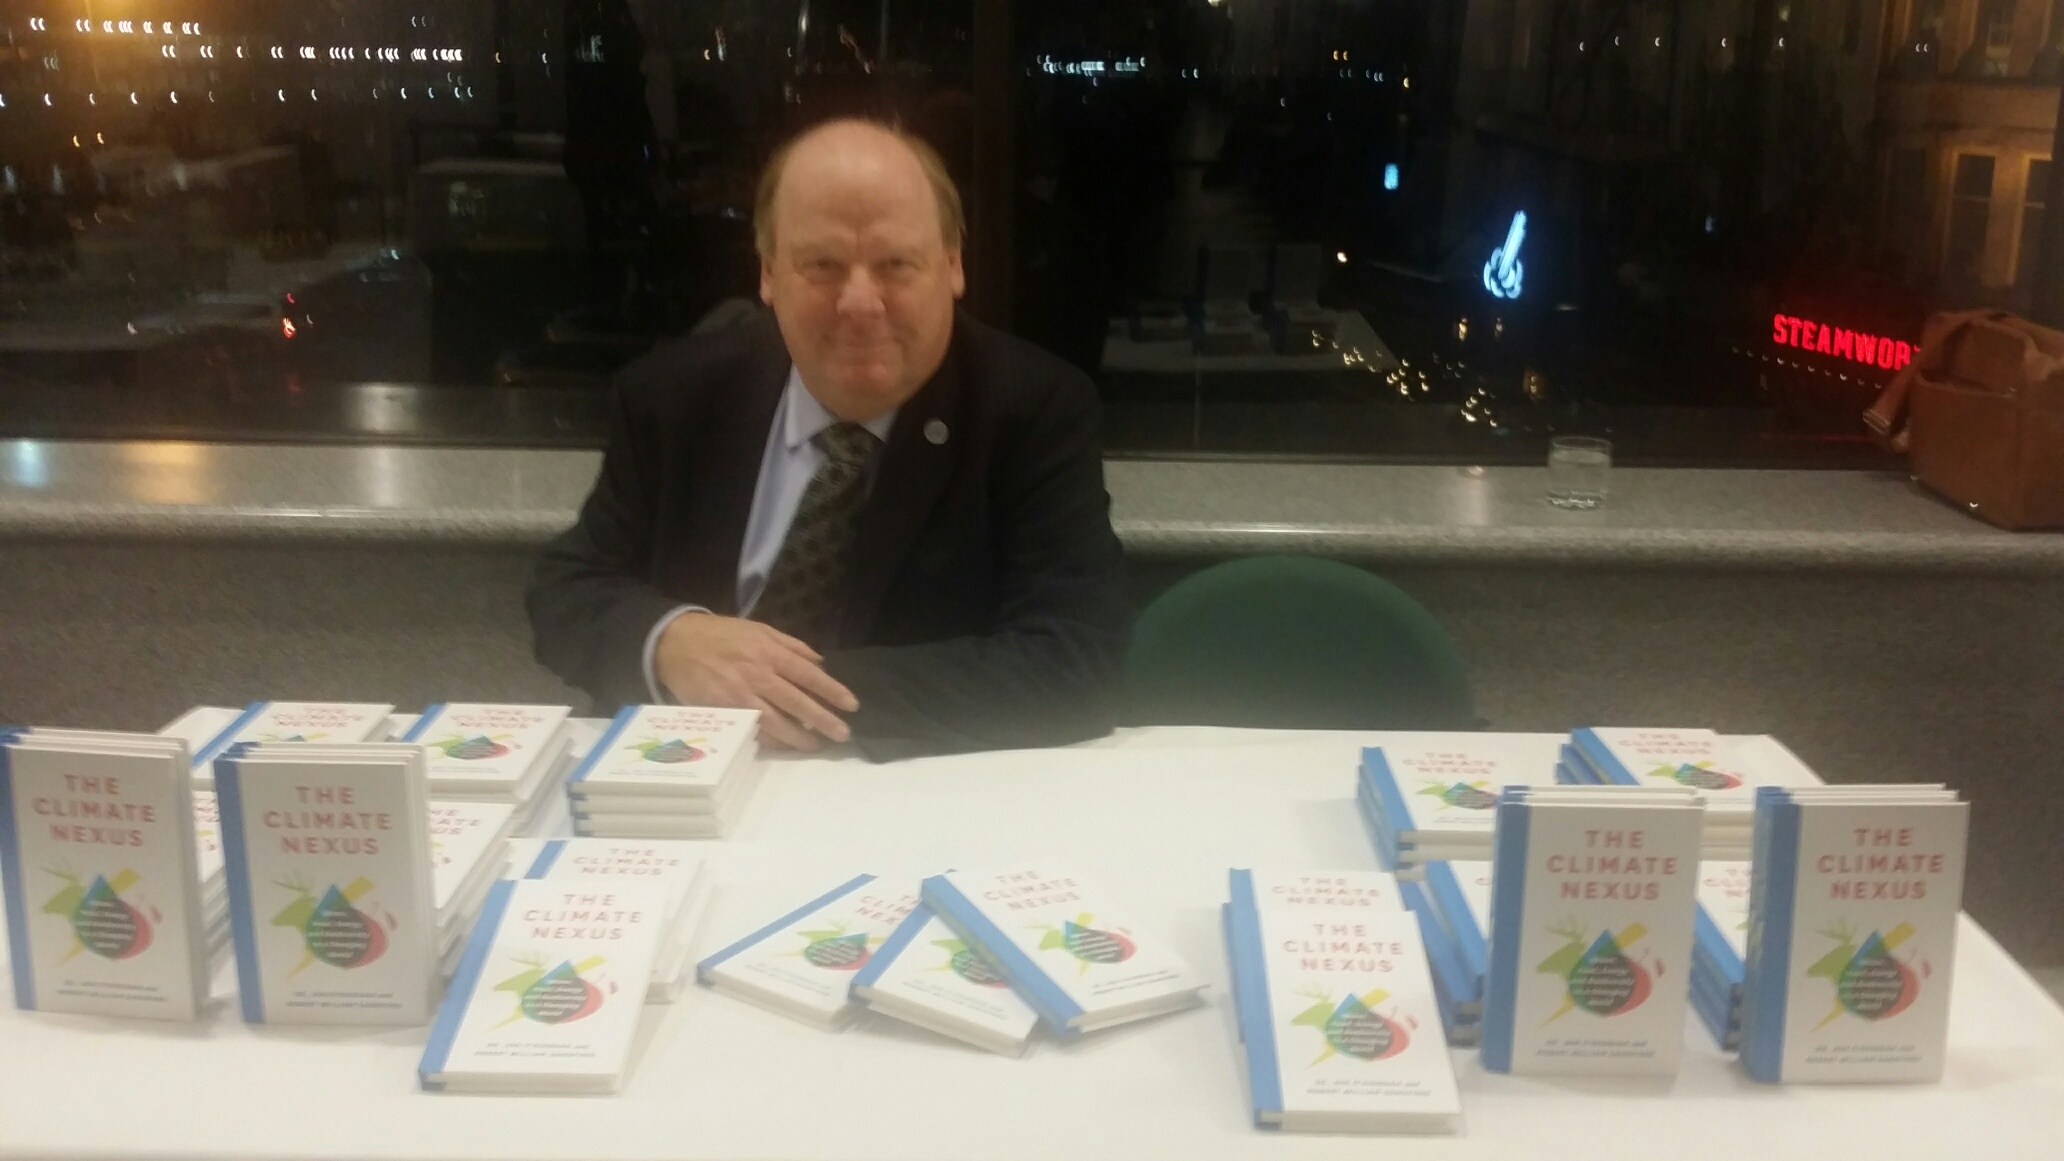 Co-author Bob Sandford with the new book